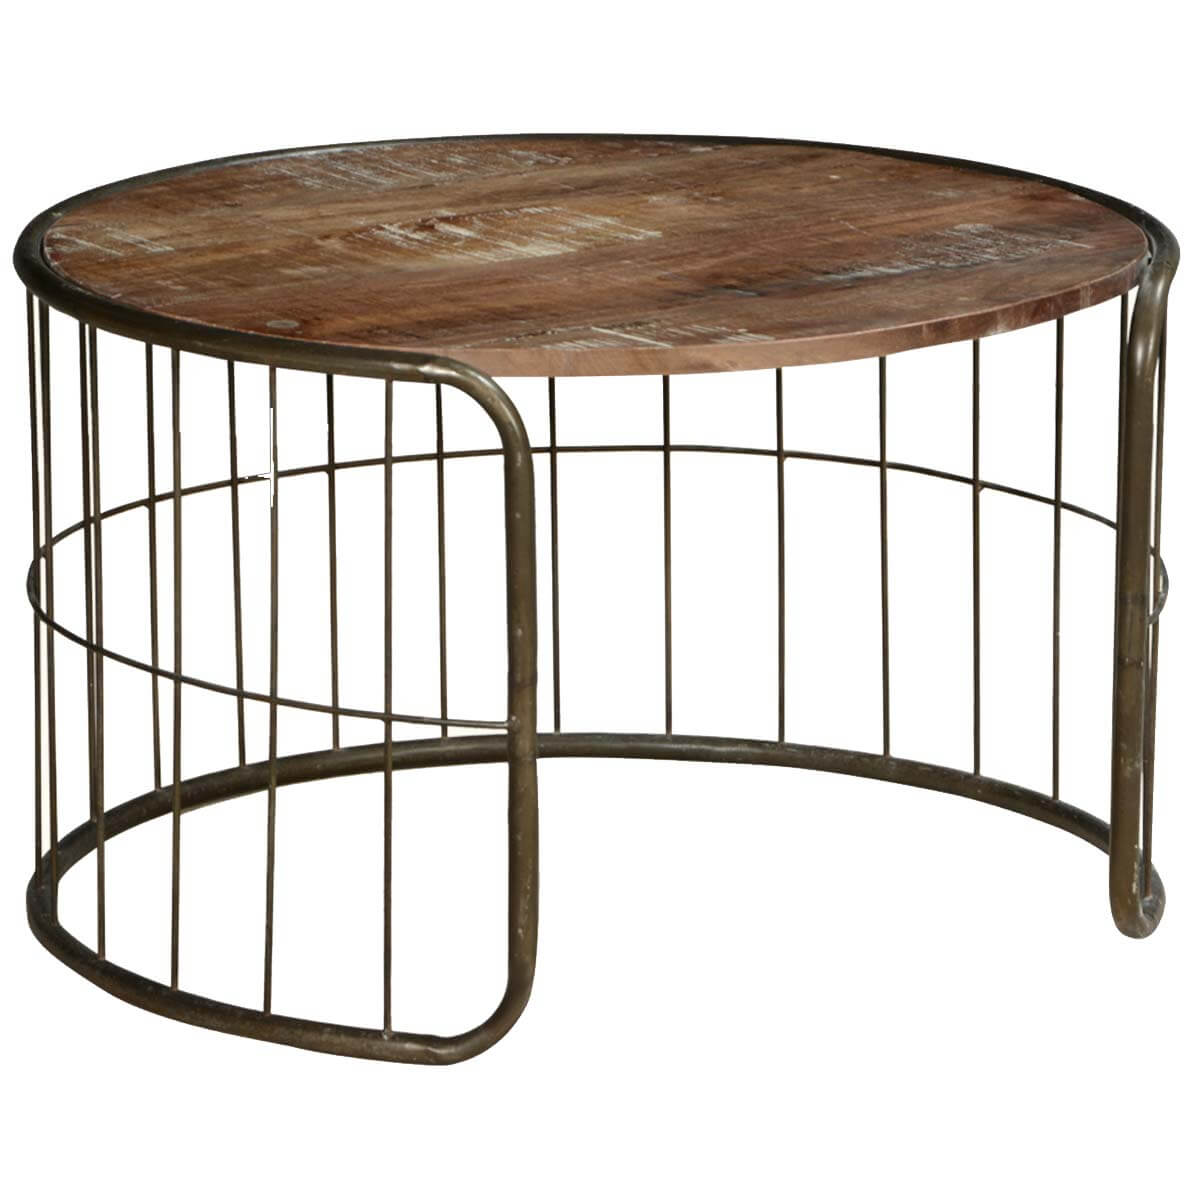 On The Fence Mango Wood Iron Rustic 30 Round Coffee Table